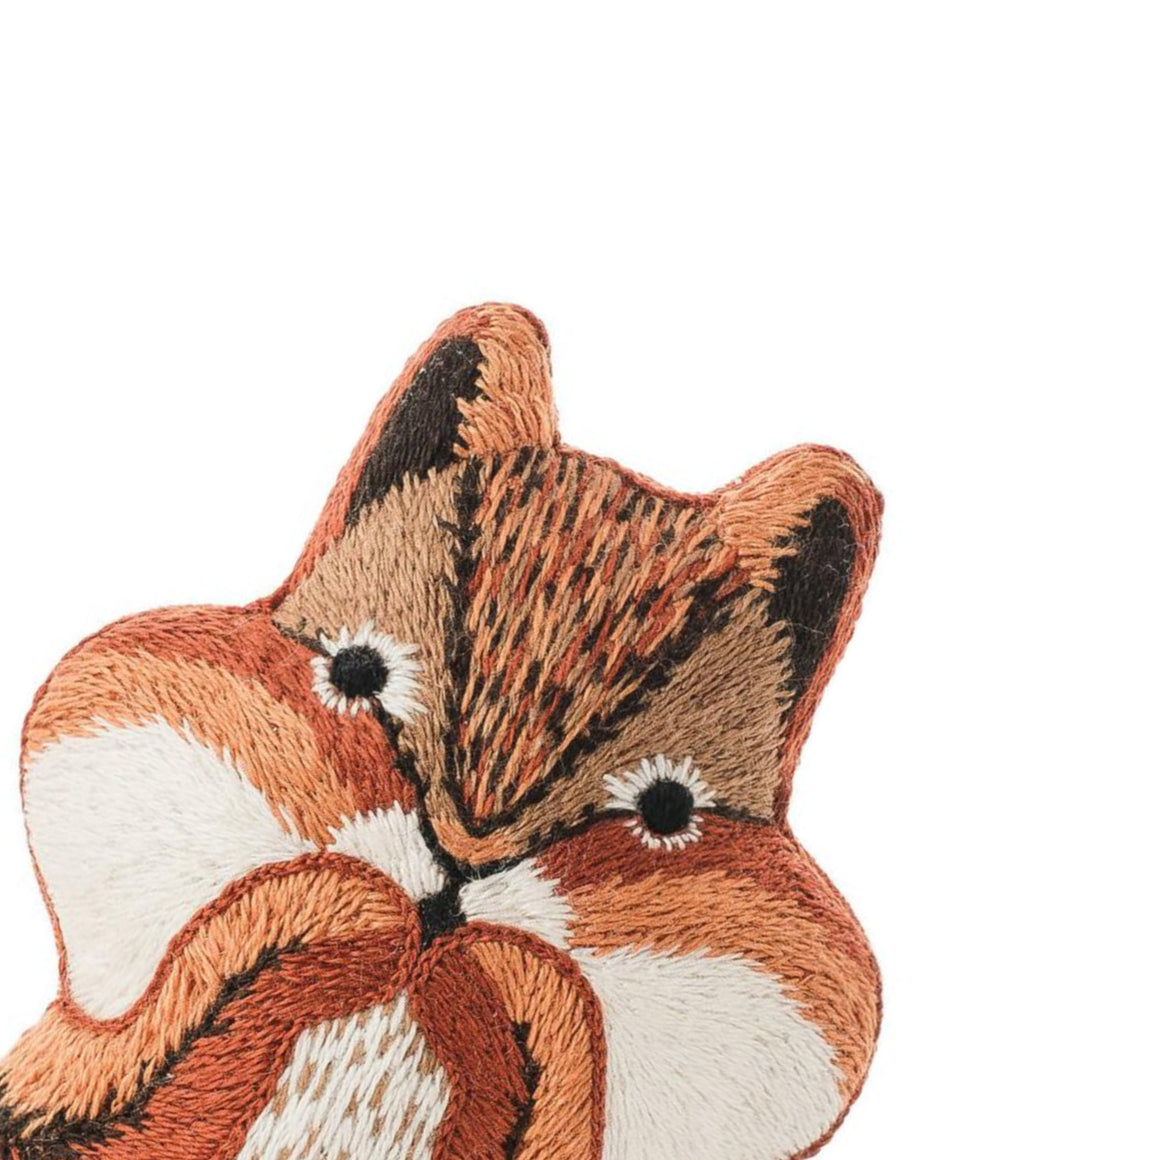 Chipmunk Embroidery Kit by Kiriki Press Embroidery Kit - Snuggly Monkey